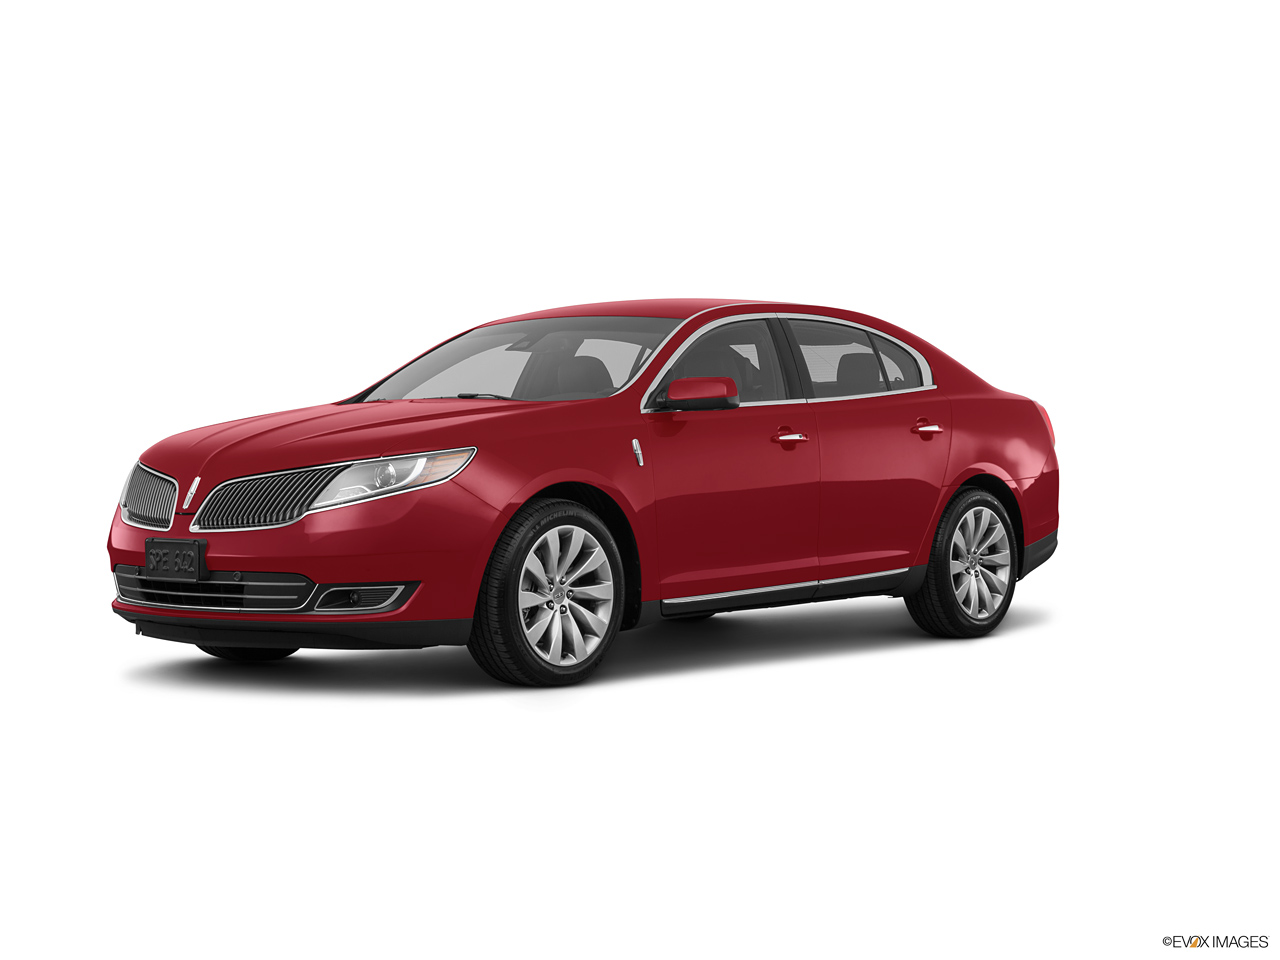 2019 Lincoln Mkt Wiring Diagrams - Wiring Diagram